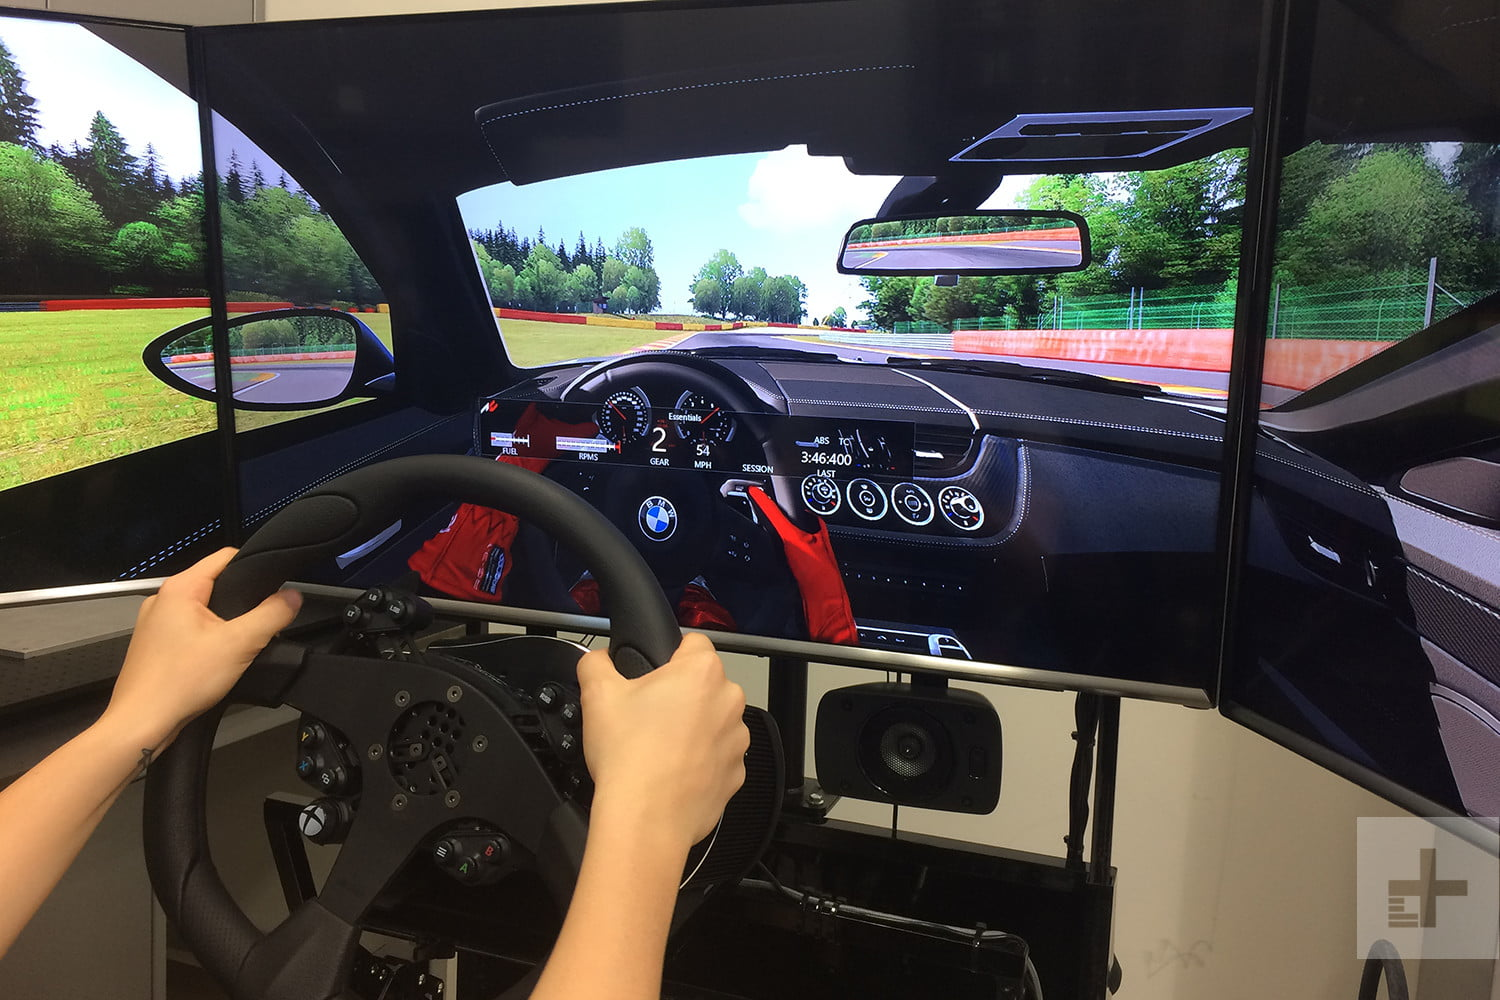 Research Team Tests Driving Simulator for Stroke Recovery